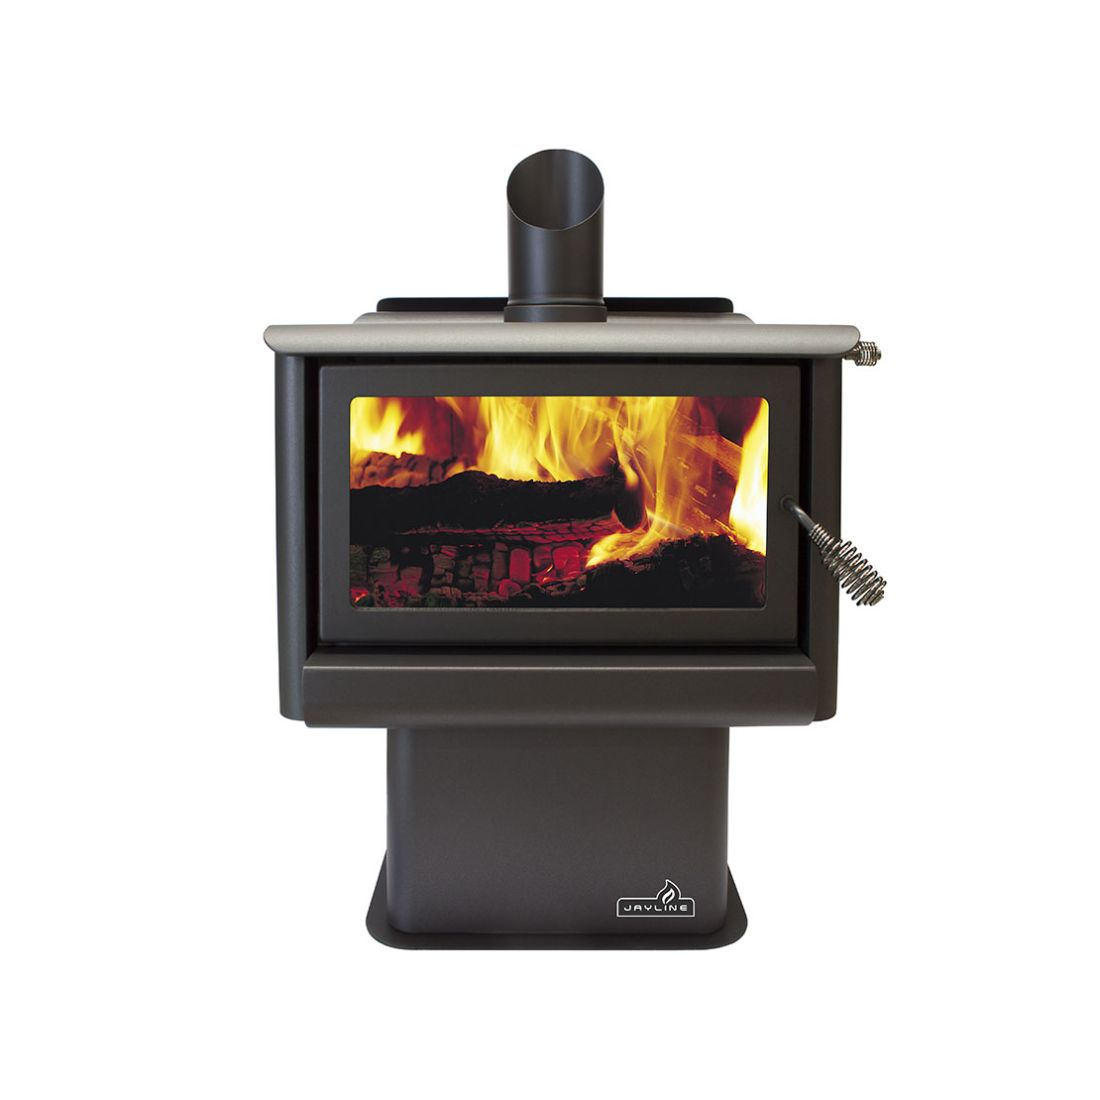 Jayline FR400 20kW Clean Air Wood Fire Metallic Black